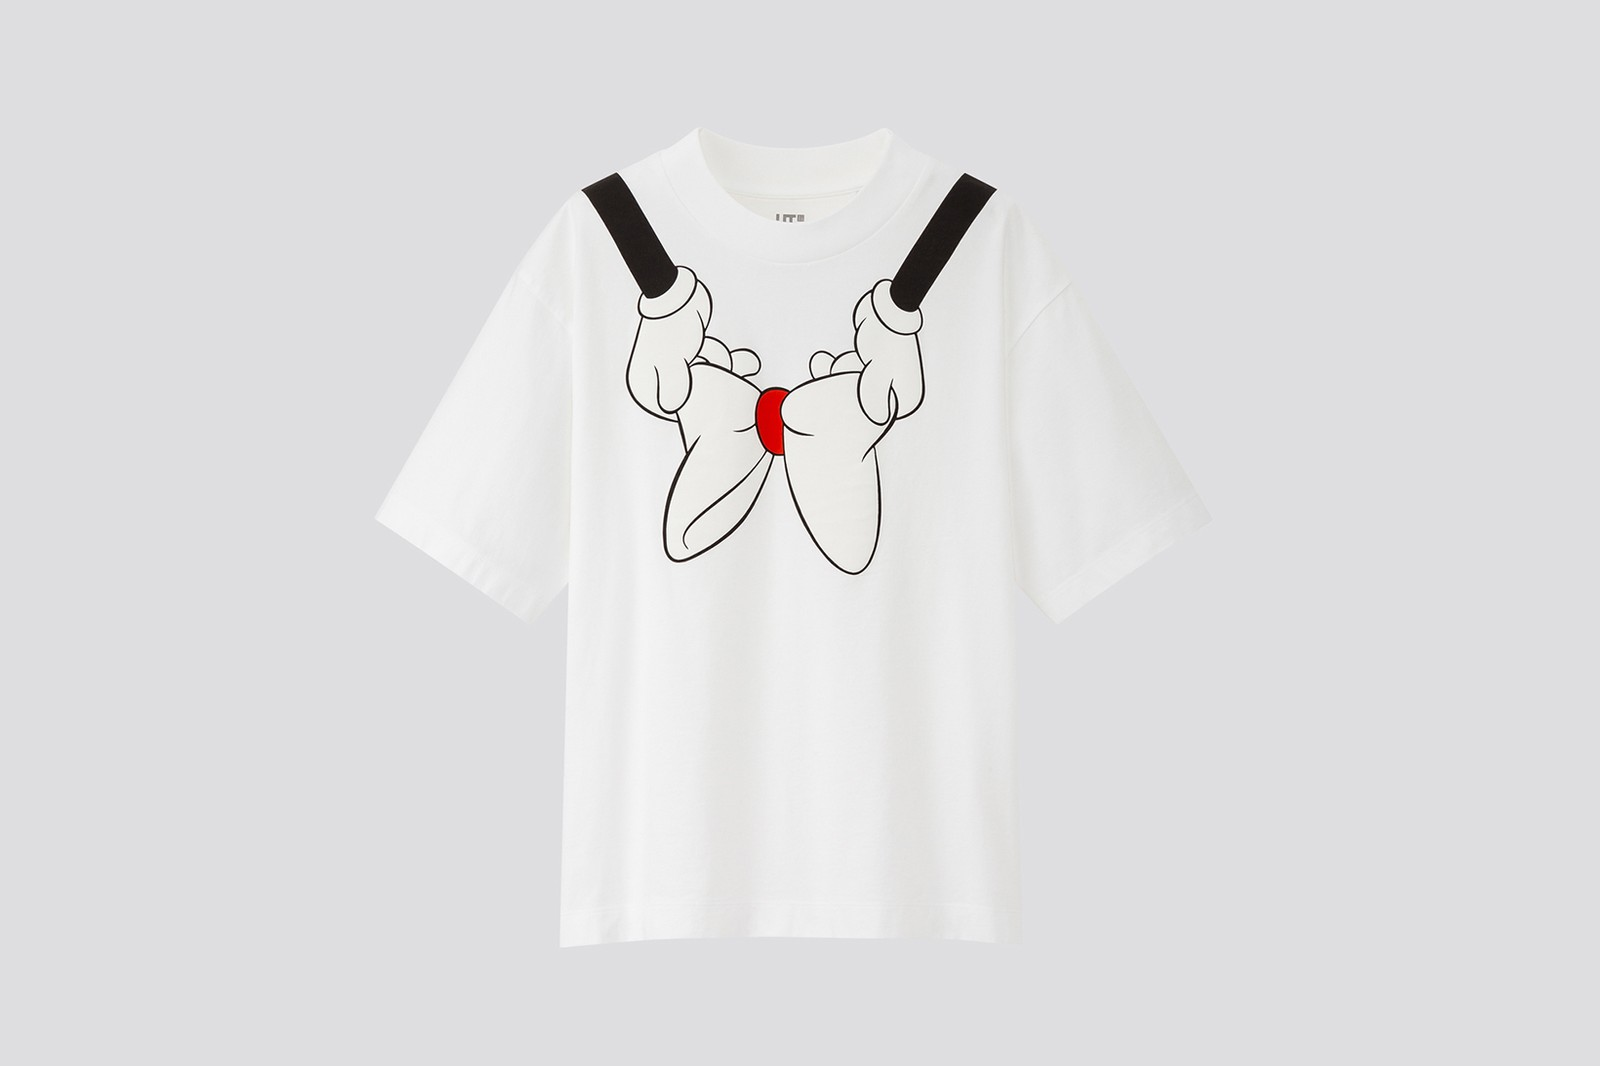 YOON Ahn AMBUSH x Disney x UNIQLO UT Collaboration Collection Launch